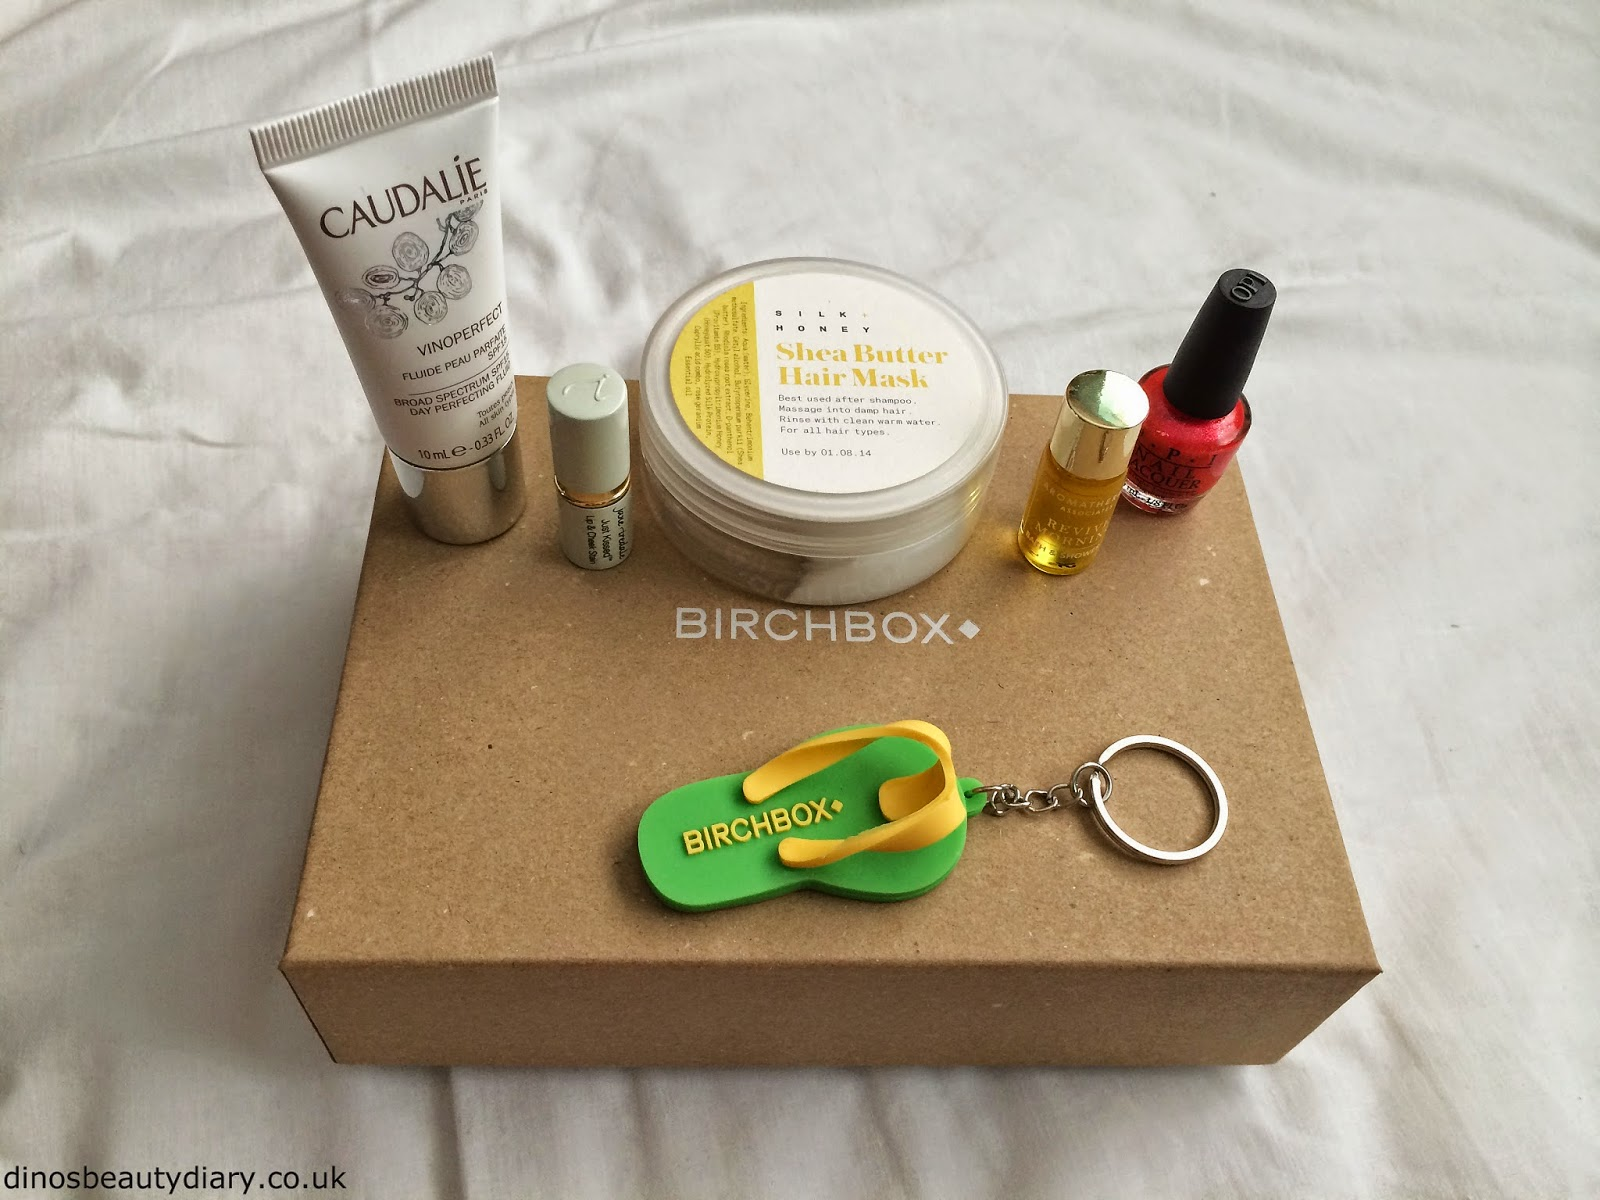 Dinos Beauty Diary - June and July Birchbox - June Birchbox